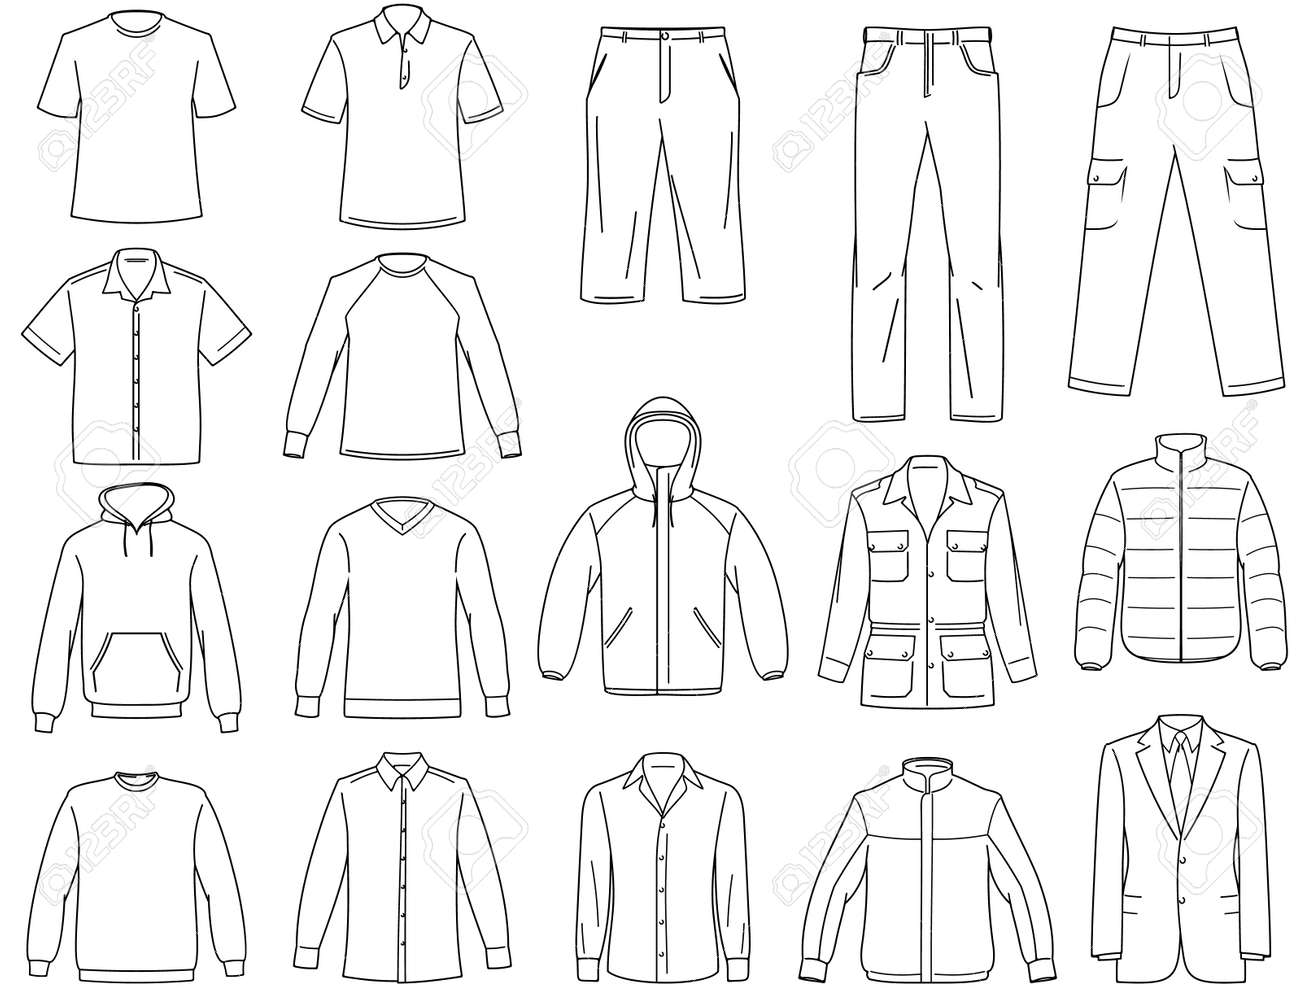 clothes template - Boat.jeremyeaton.co